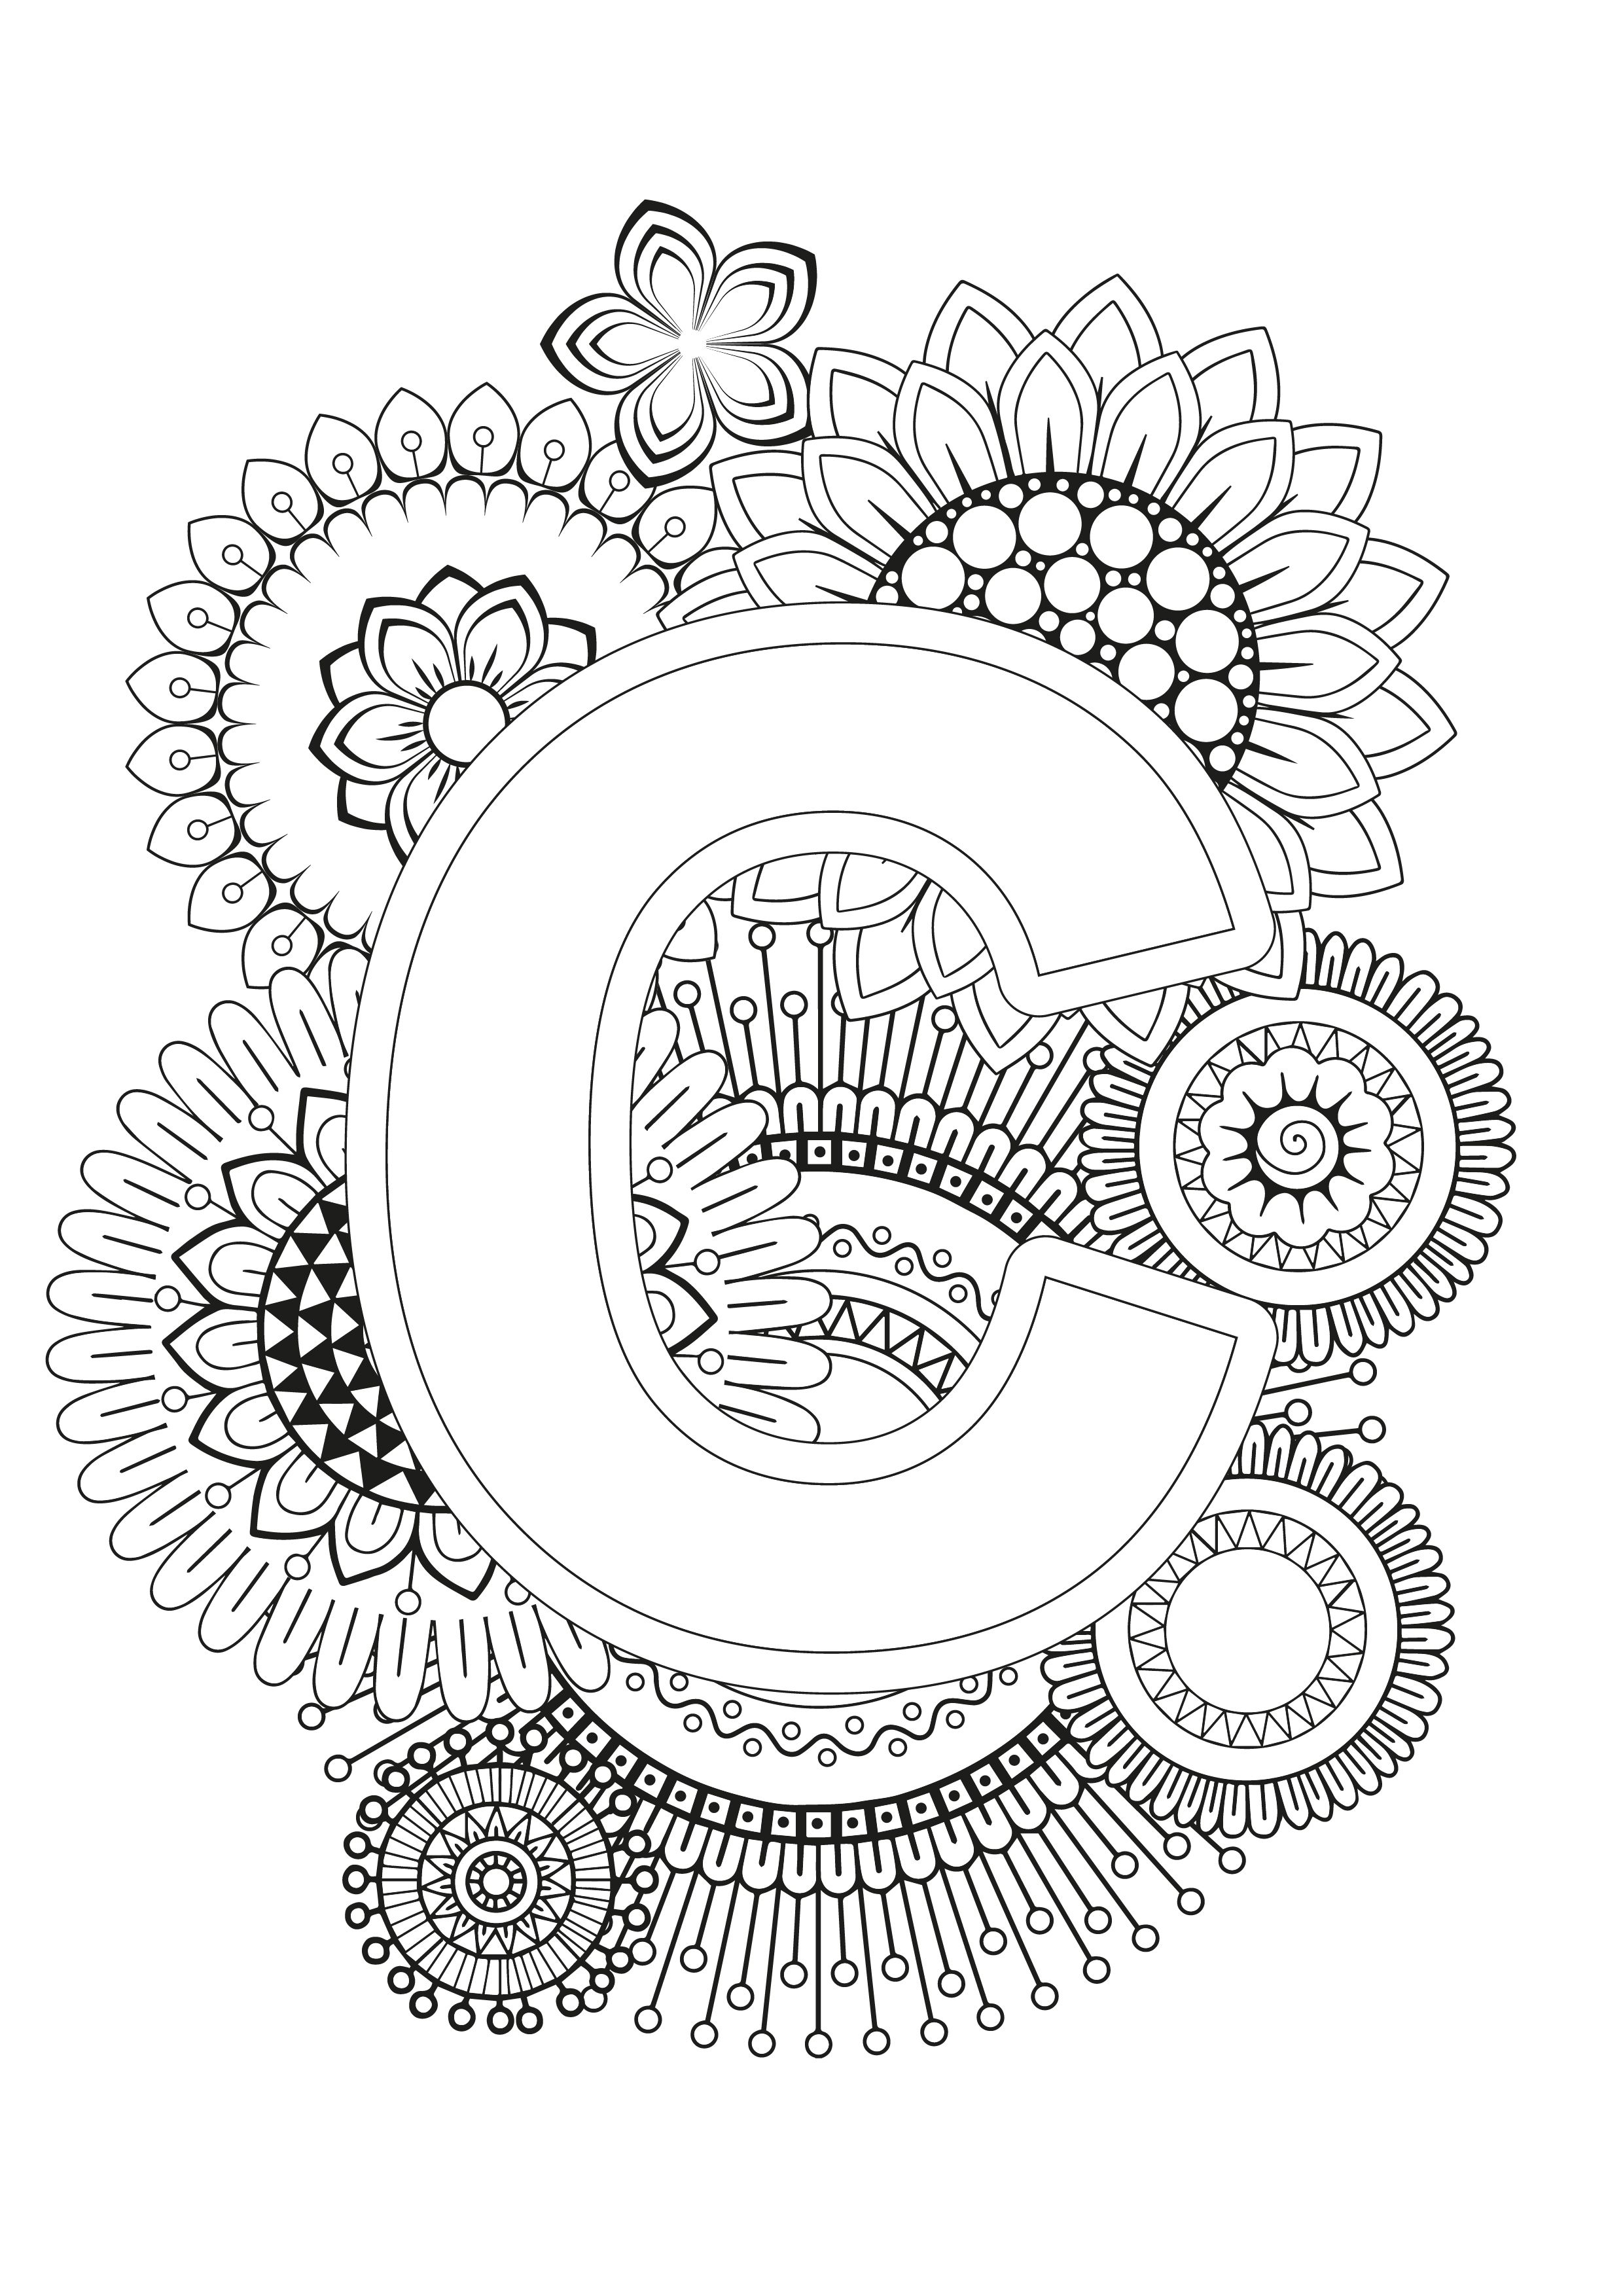 Mindfulness Coloring Page Alphabet Coloring Pages Coloring